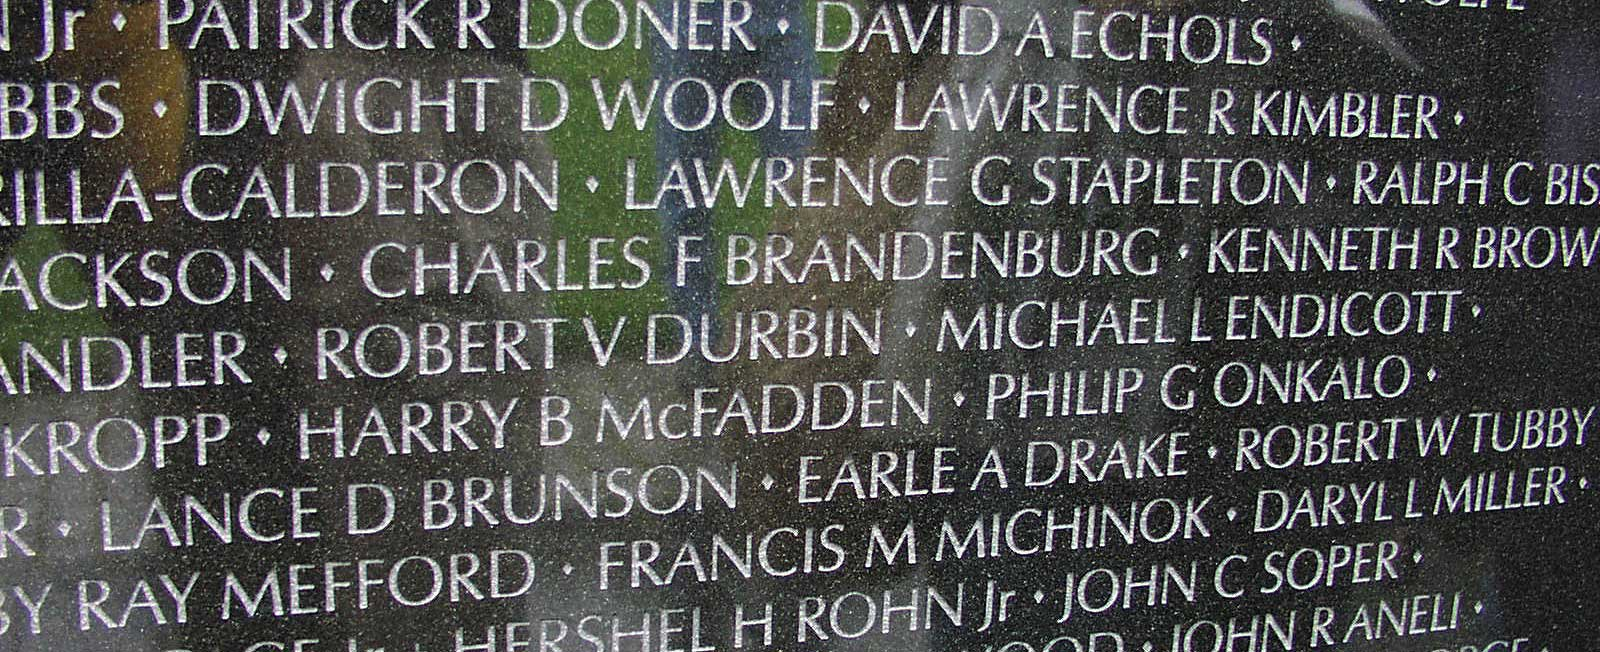 Herman Zapf's Optima typeface used in the Vietnam Memorial in Washington